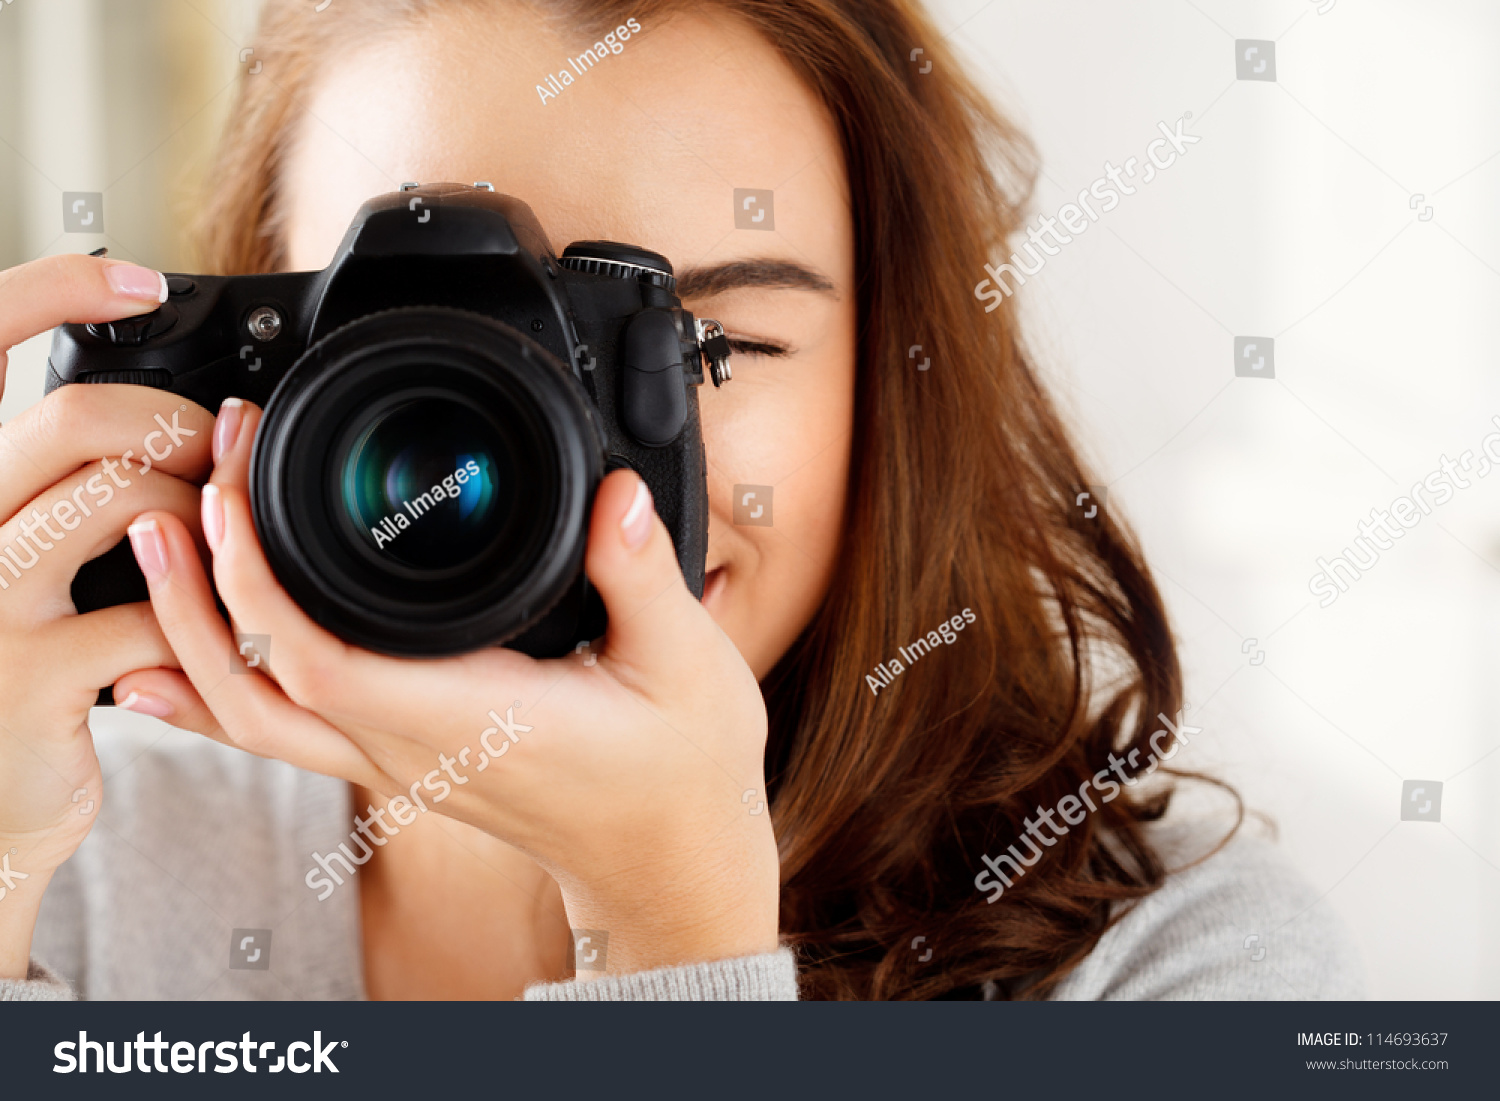 Camera How To Take Good Pictures With Dslr Camera photographer woman girl holding dslr camera stock photo 114693637 is taking photographs